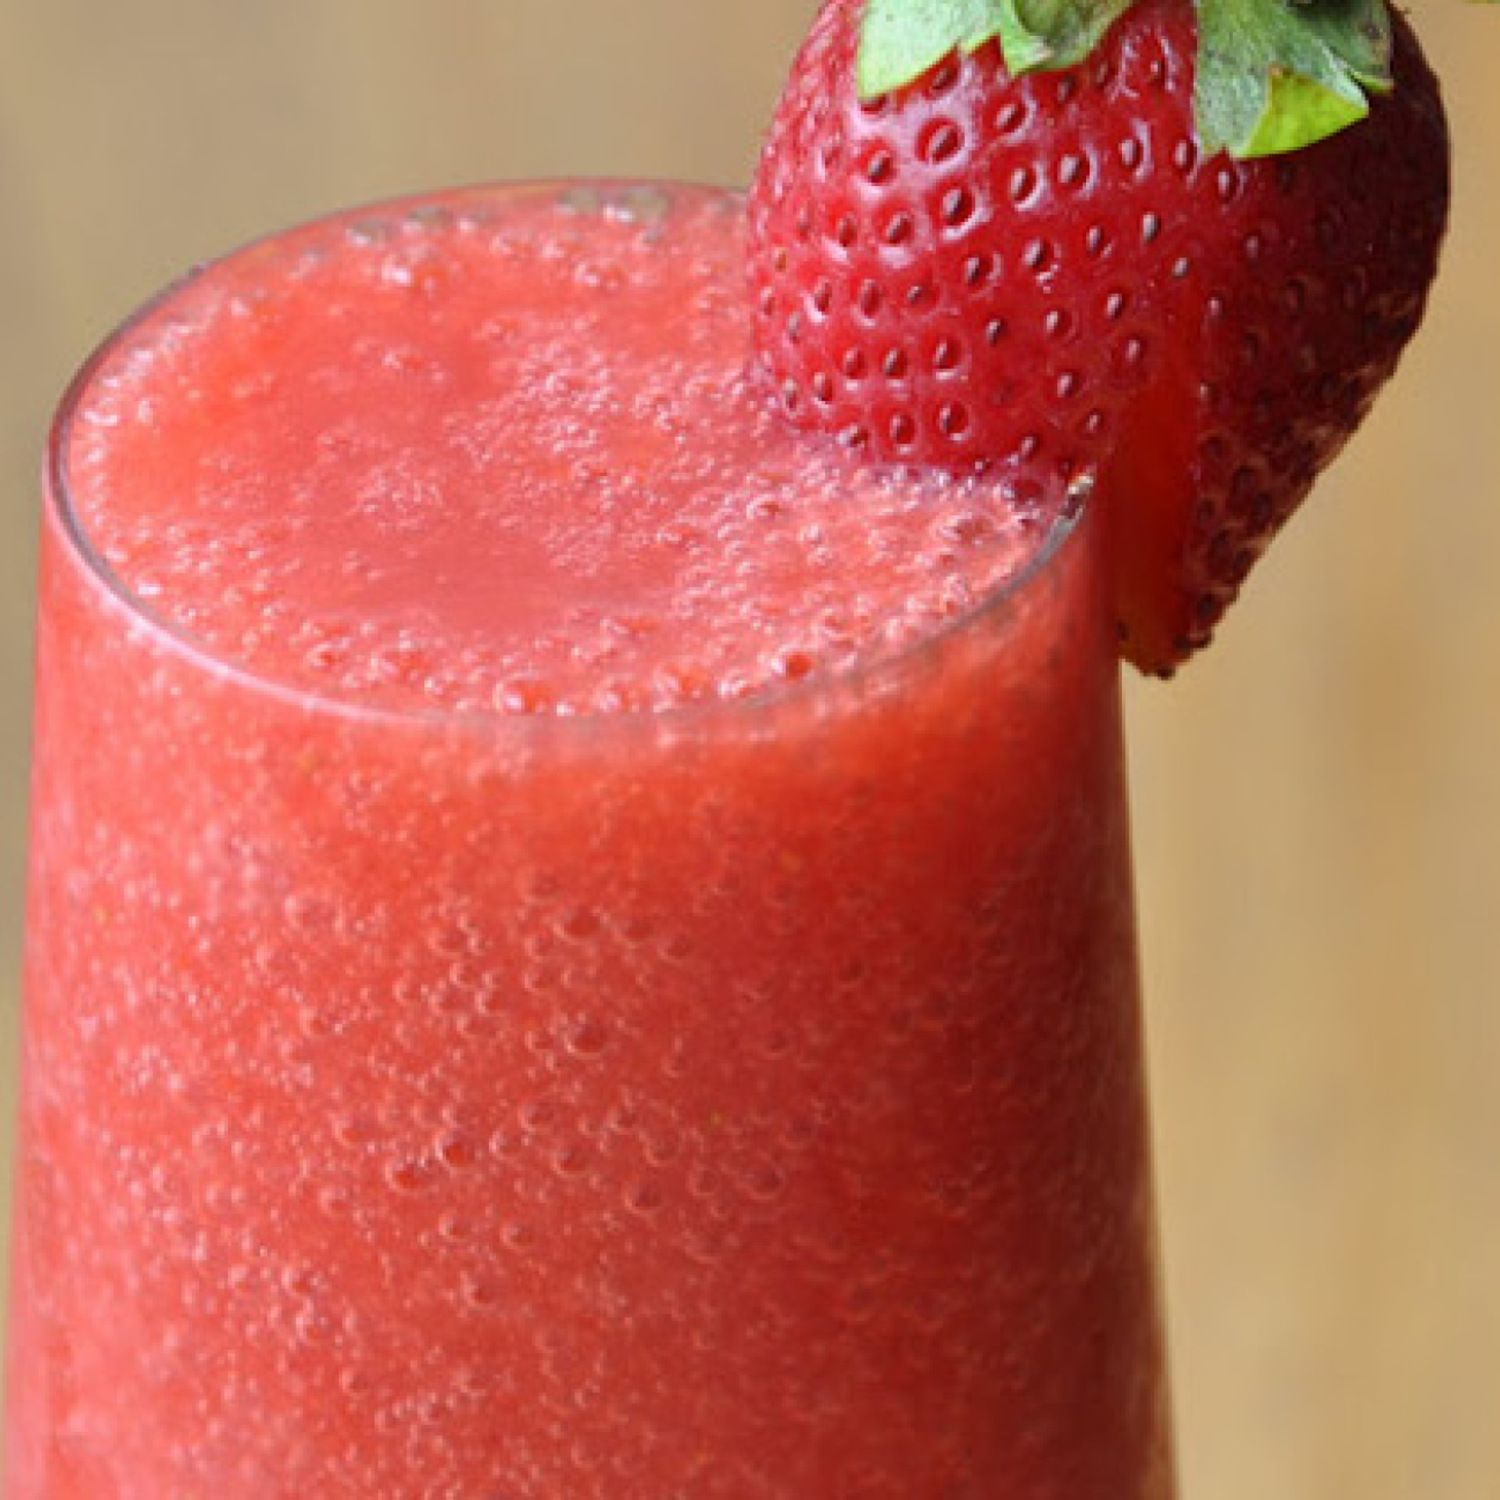 Non-Dairy Strawberry Smoothie #fruitsmoothie